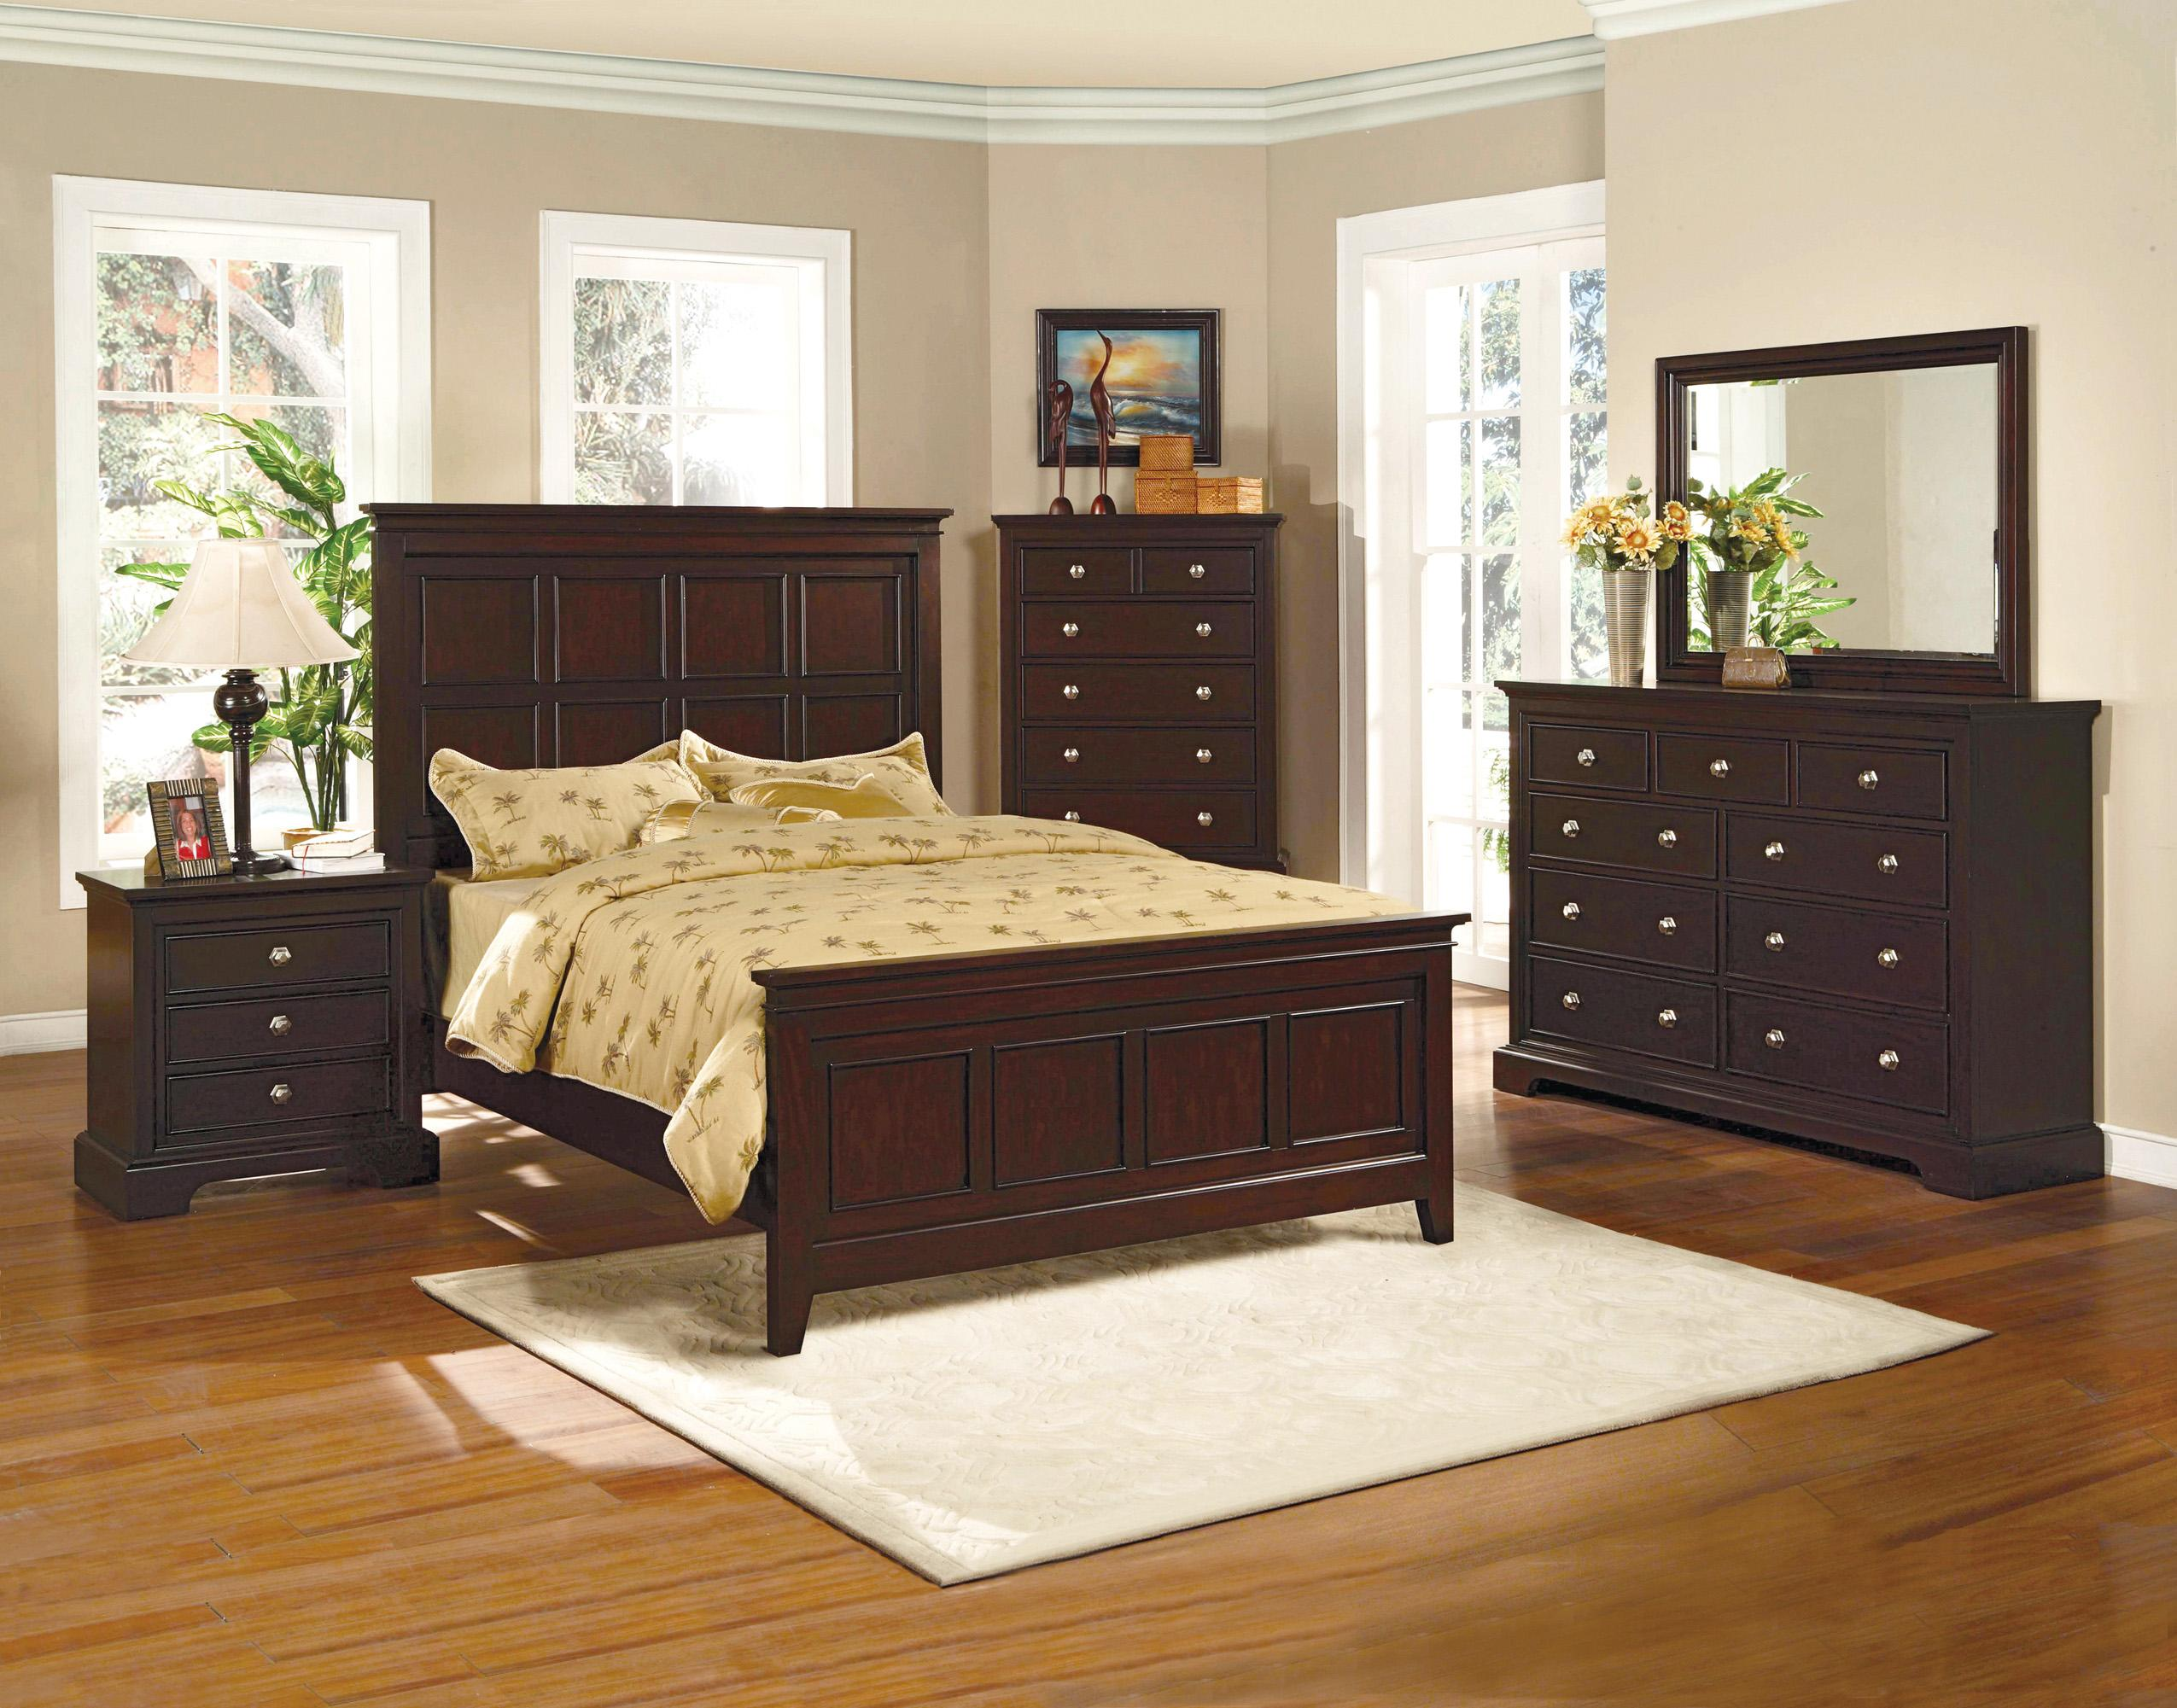 Crown Mark London King Bedroom Group - Item Number: B6750 King Bedroom Group 1